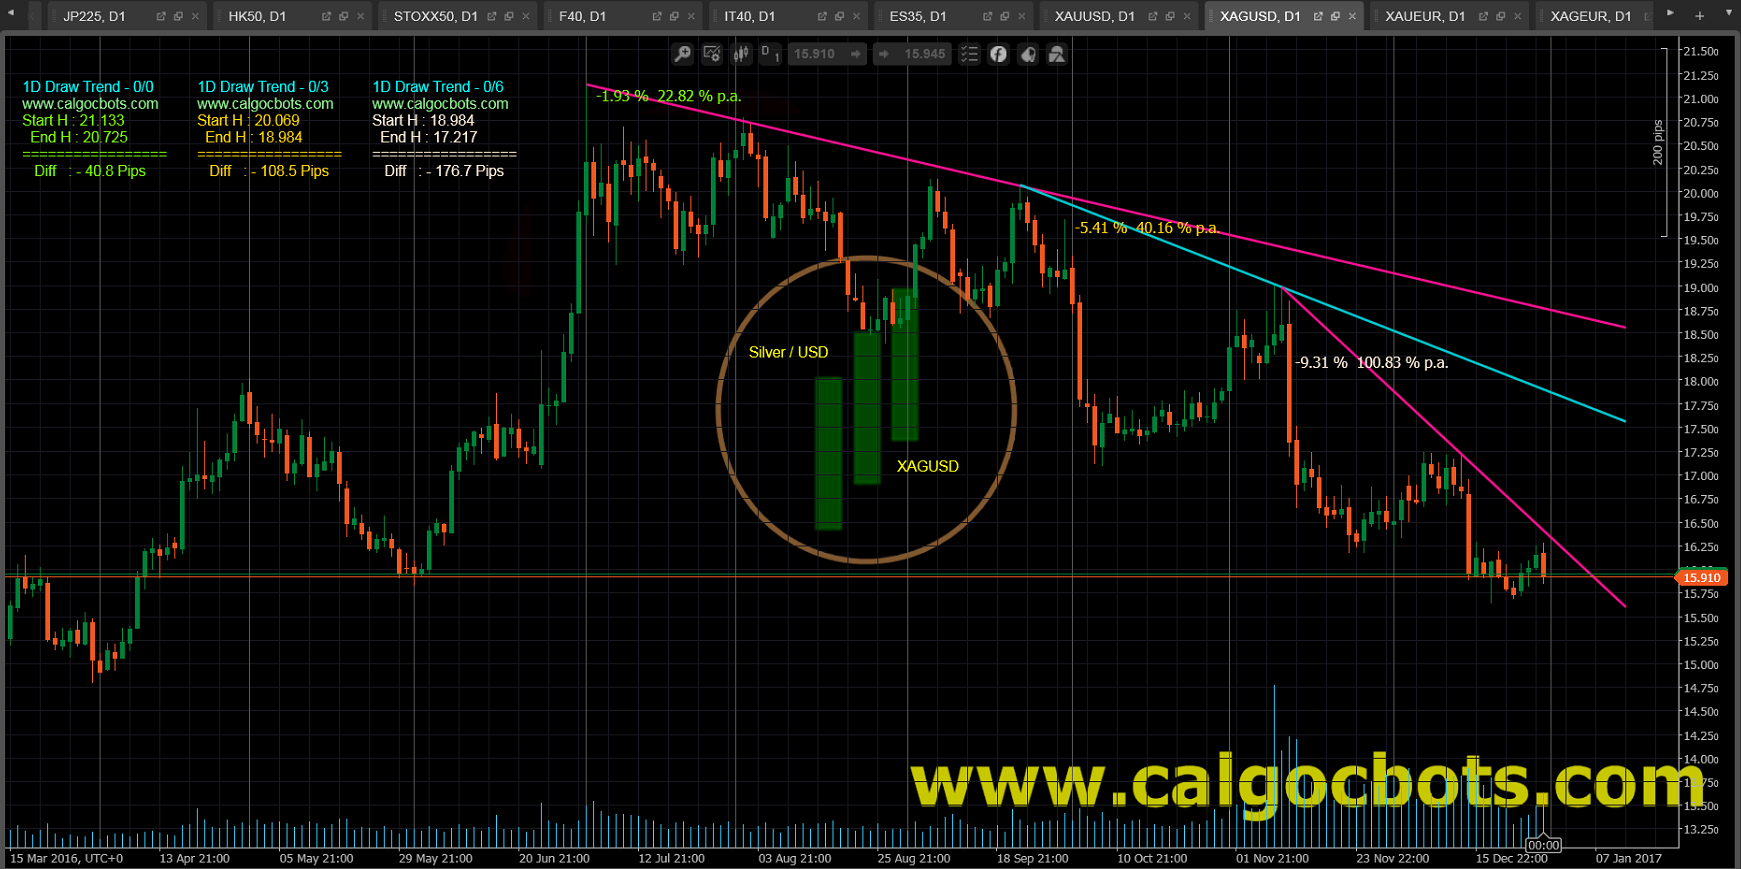 1D Draw Trend - cAlgo and cTrader Indicator - Silver USD Spot - XAGUSD Daily Chart - 004